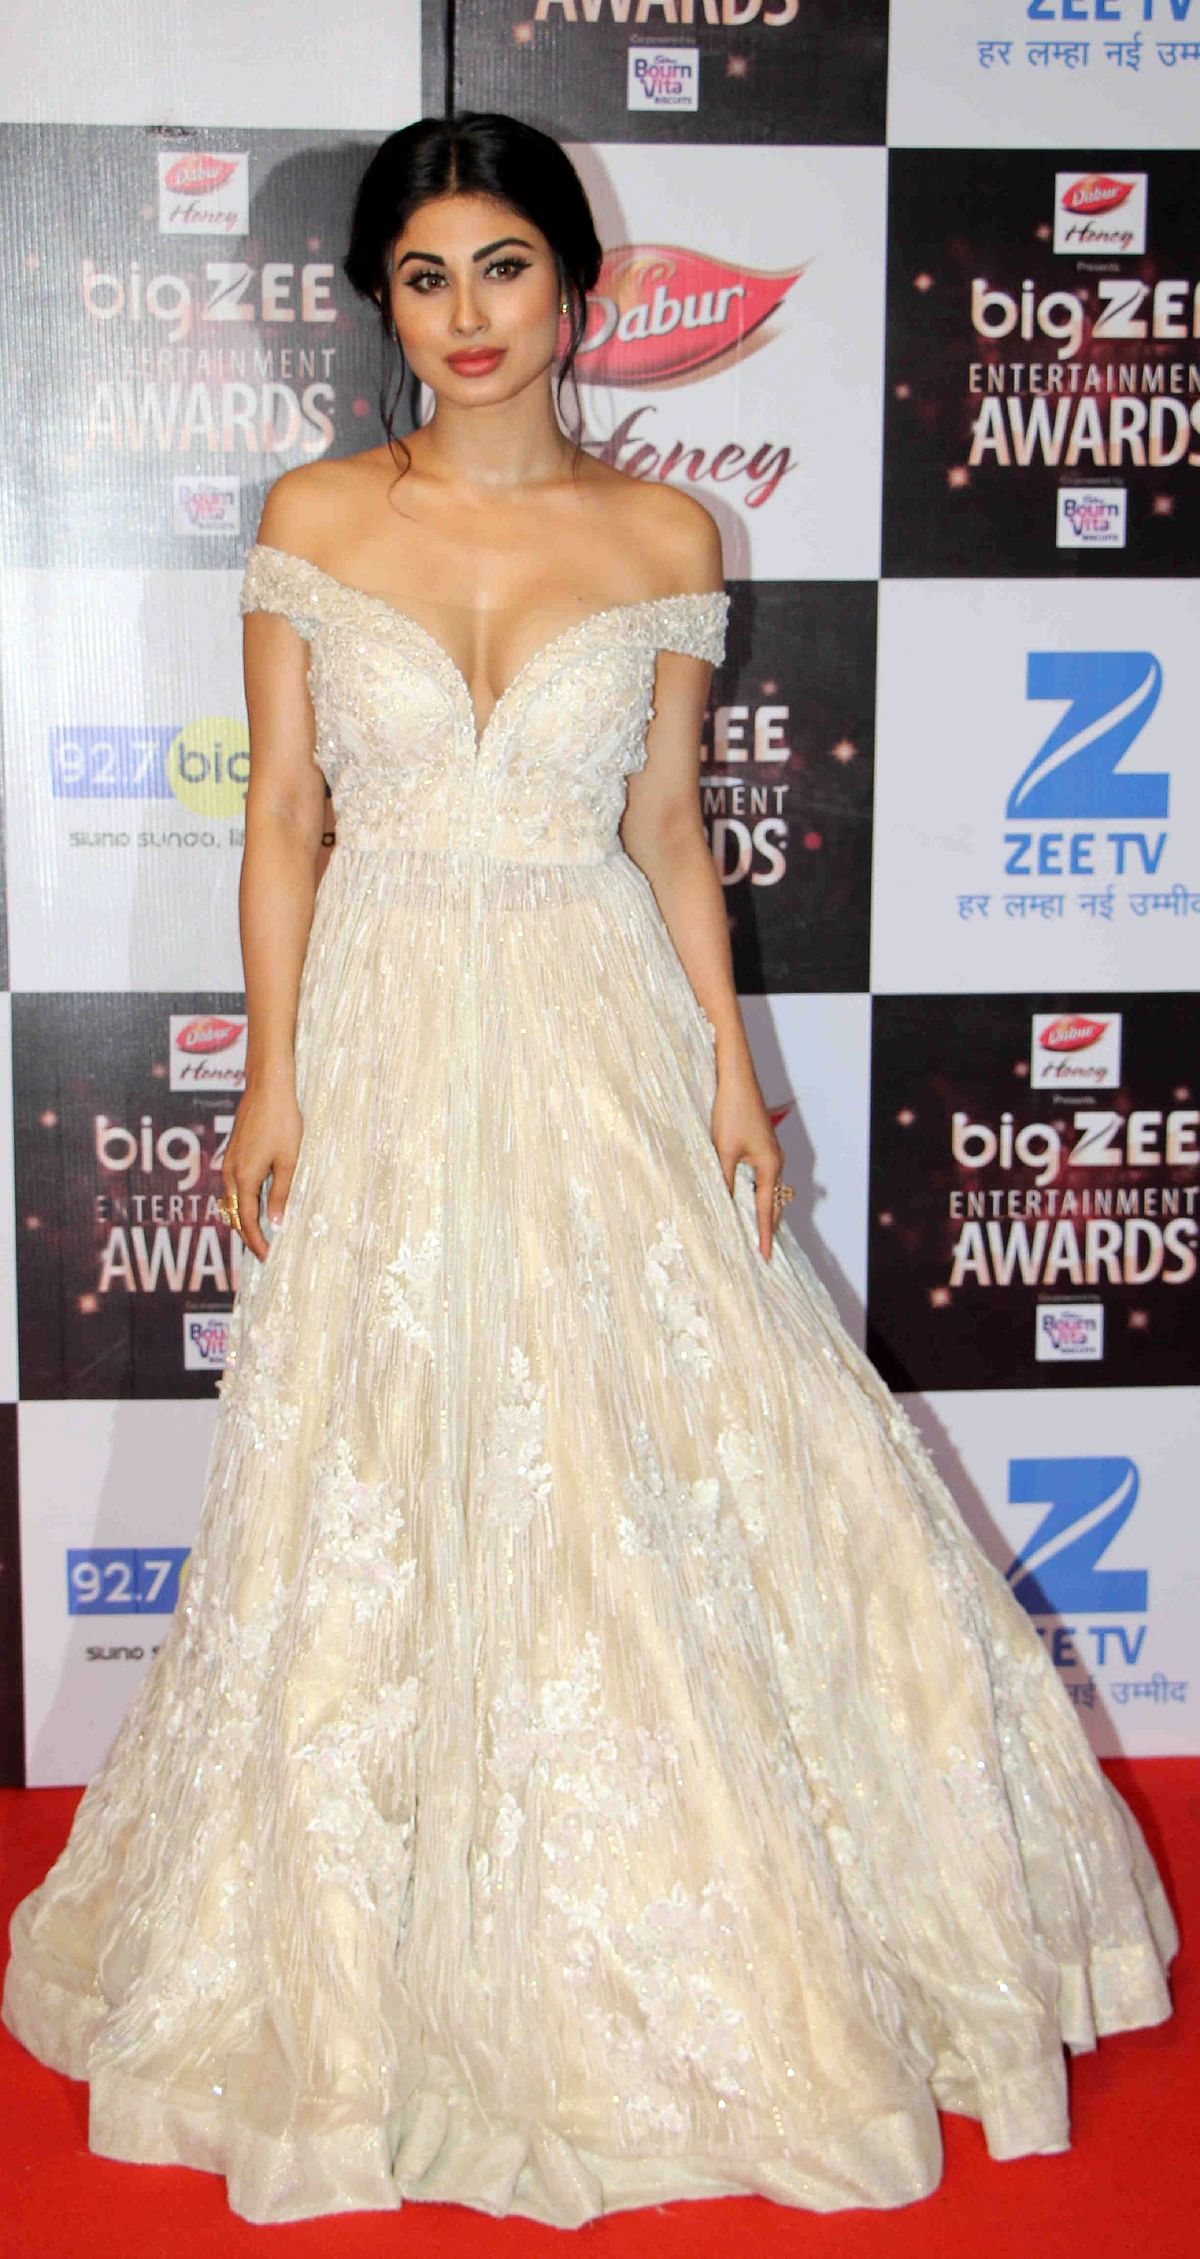 In this photograph taken on July 29, 2017, Indian Bollywood actress Mouni Roy attends the BIG ZEE Entertainment Awards 2017 ceremony in Mumbai. / AFP PHOTO / STR